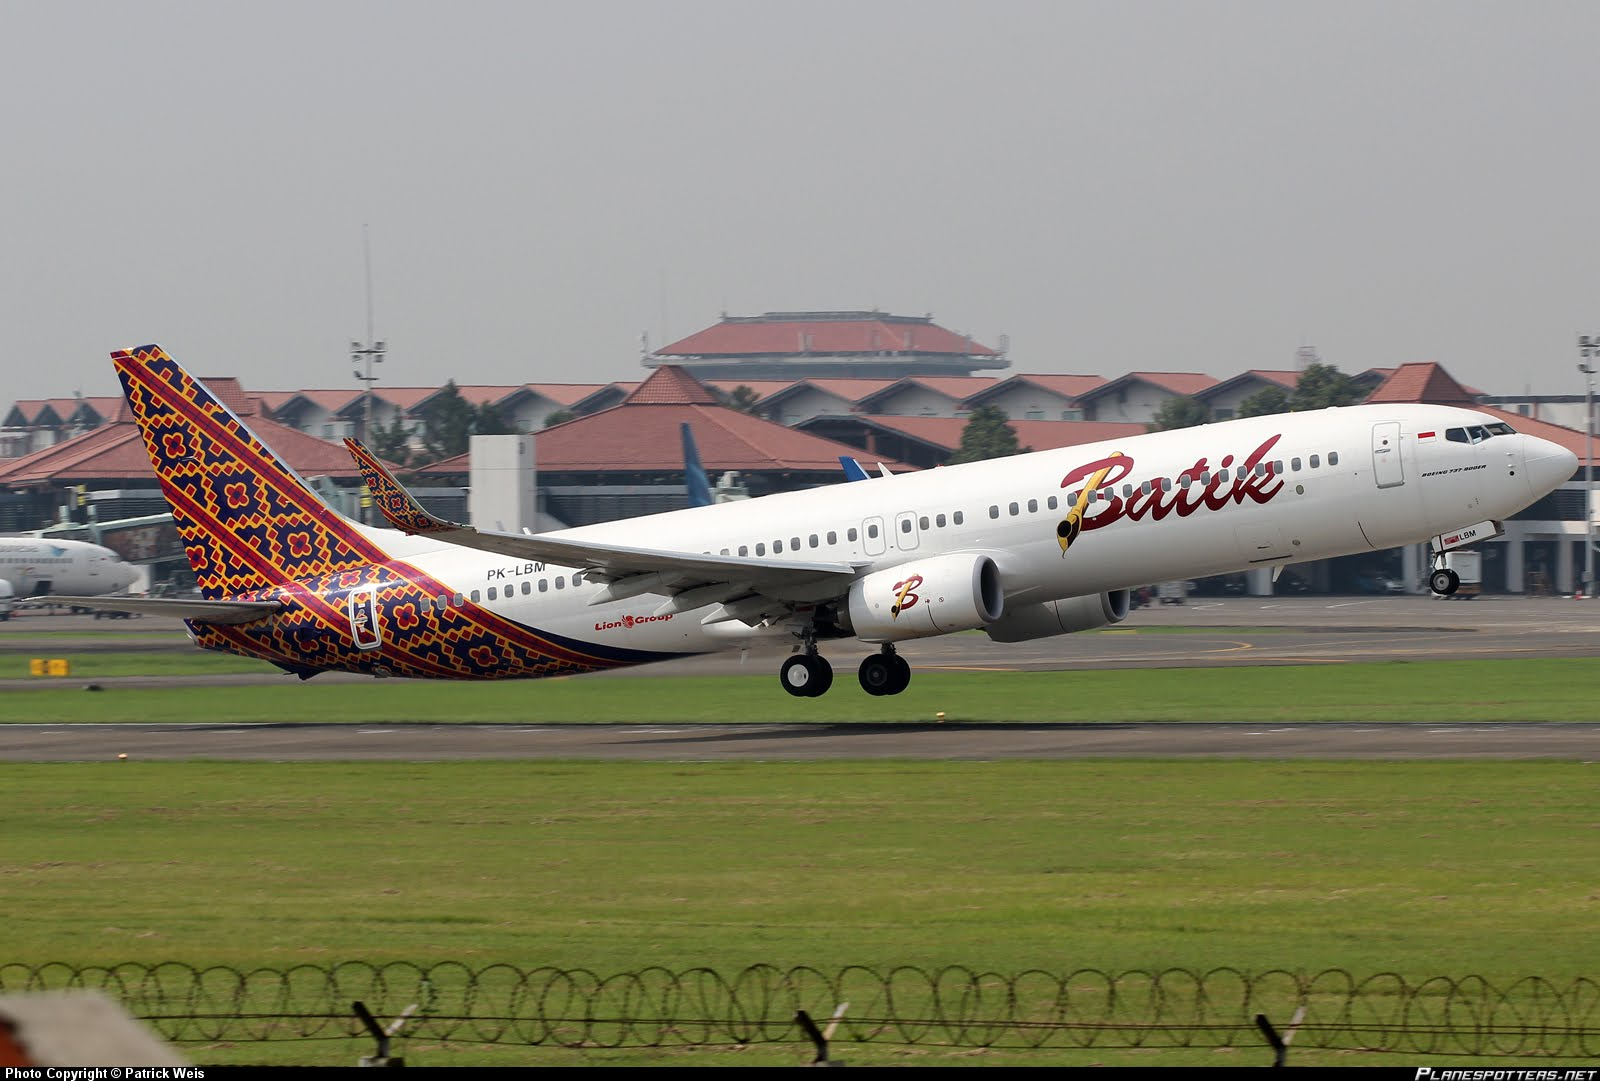 Tickets for flights in Indonesia